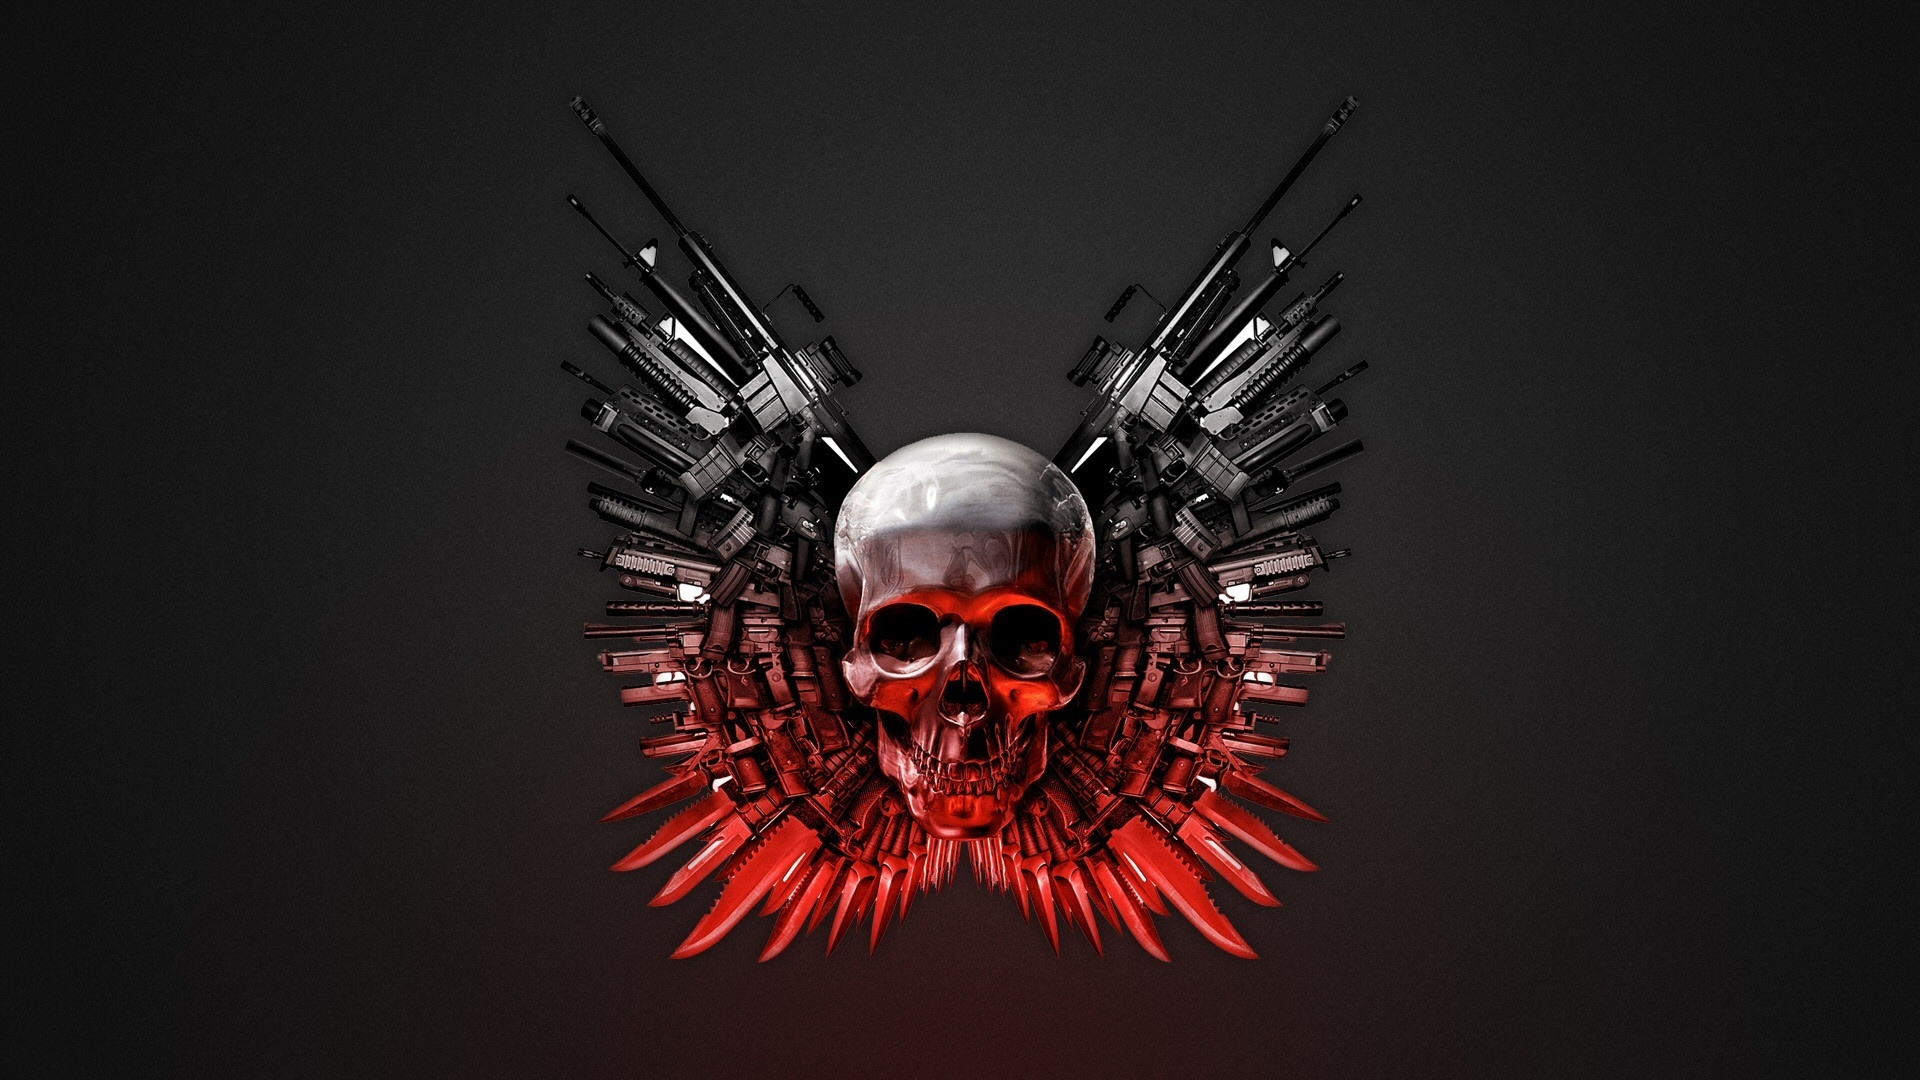 The Expendables - The Expendables Wallpaper (18305997) - Fanpop